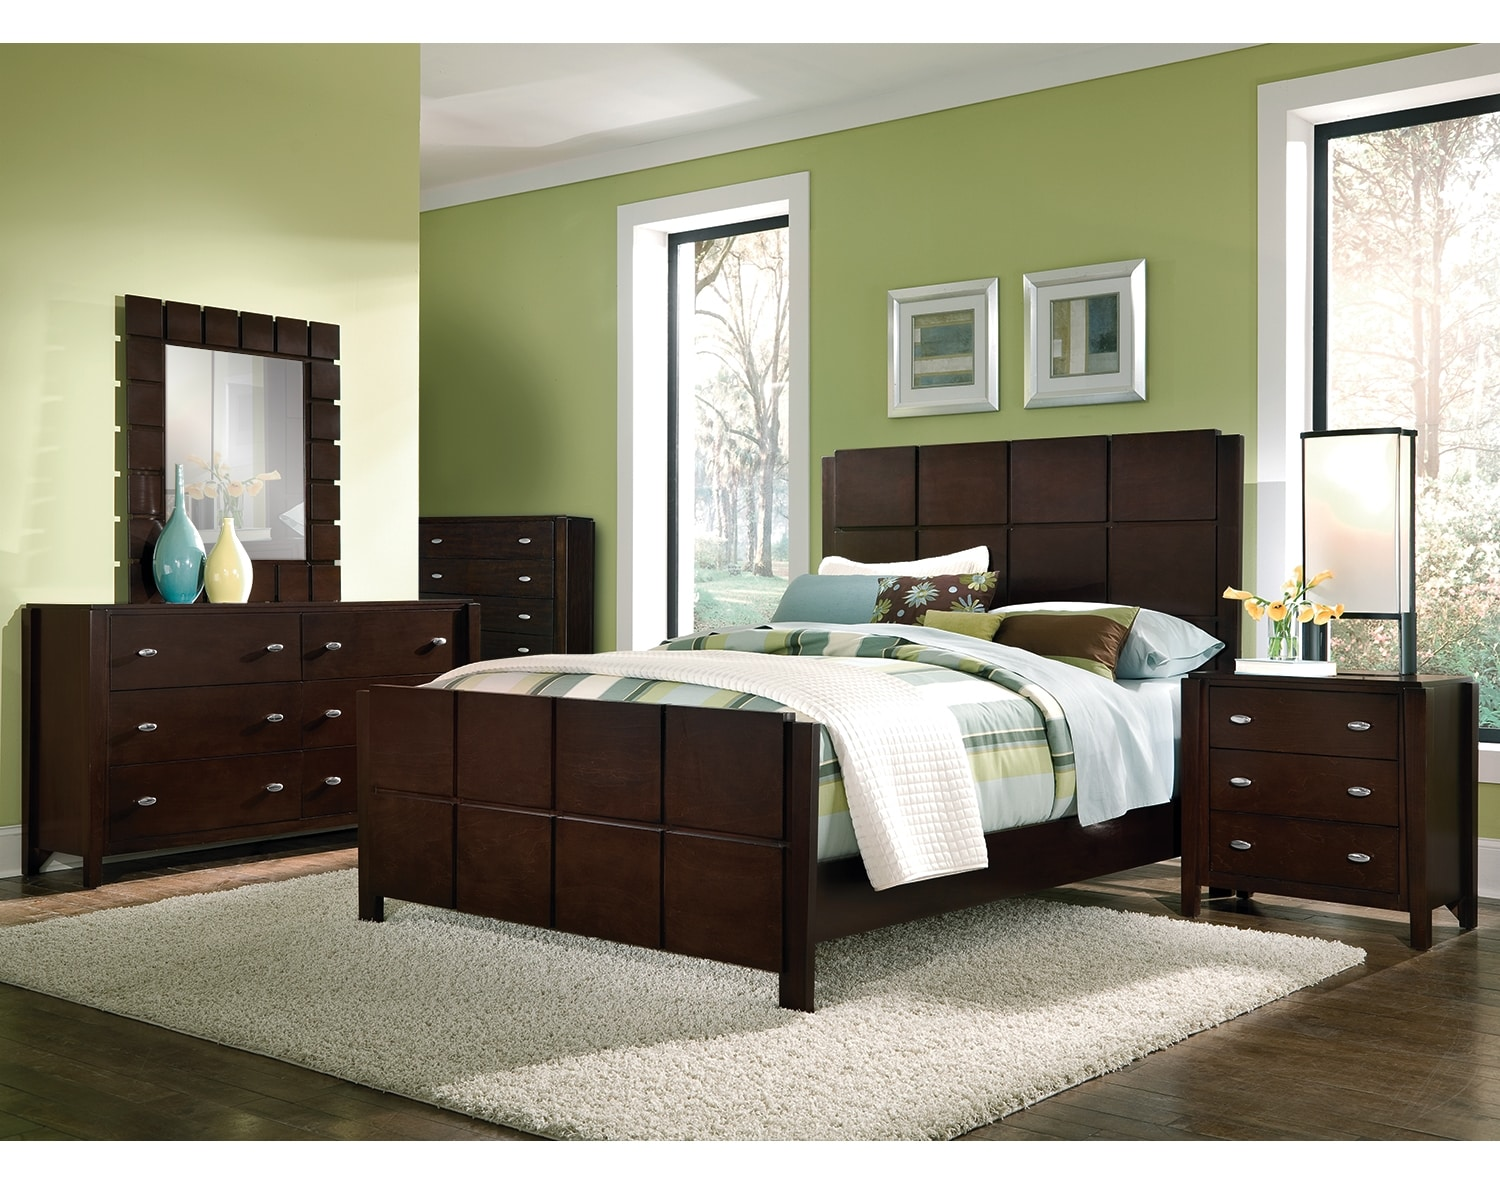 The Mosaic Collection Value City Furniture